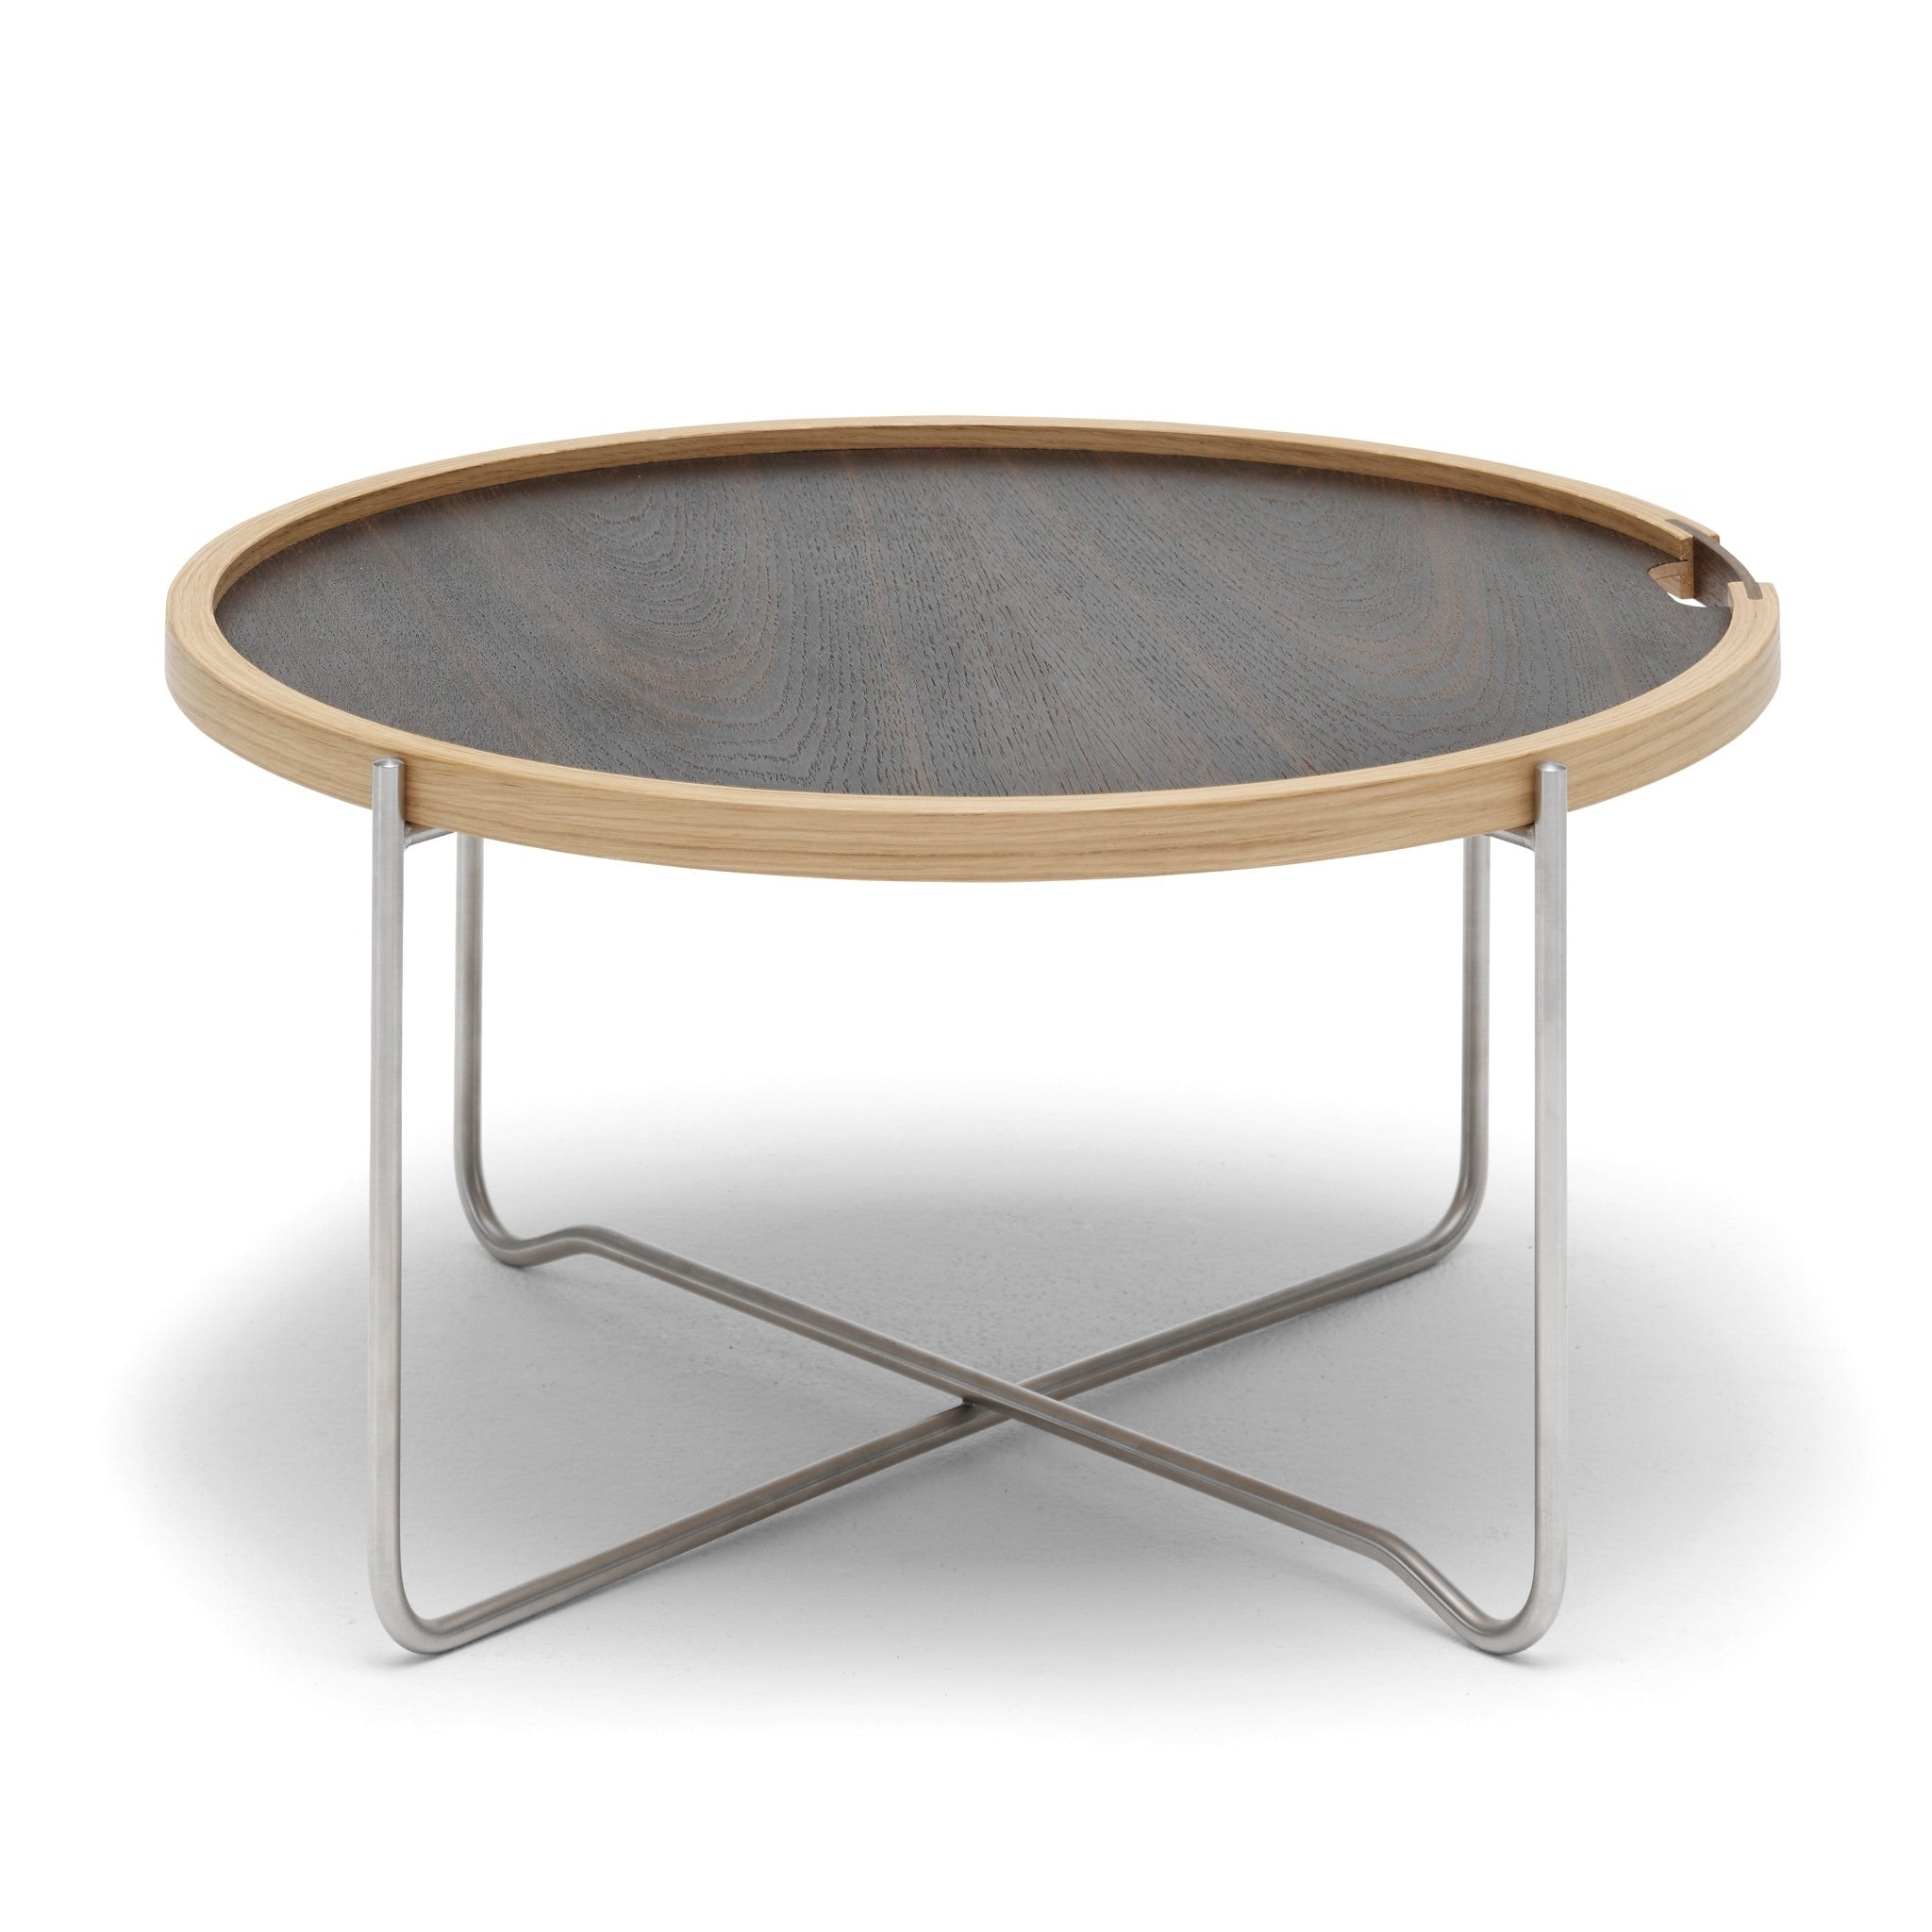 CH417 Tray Table by Carl Hansen & Søn